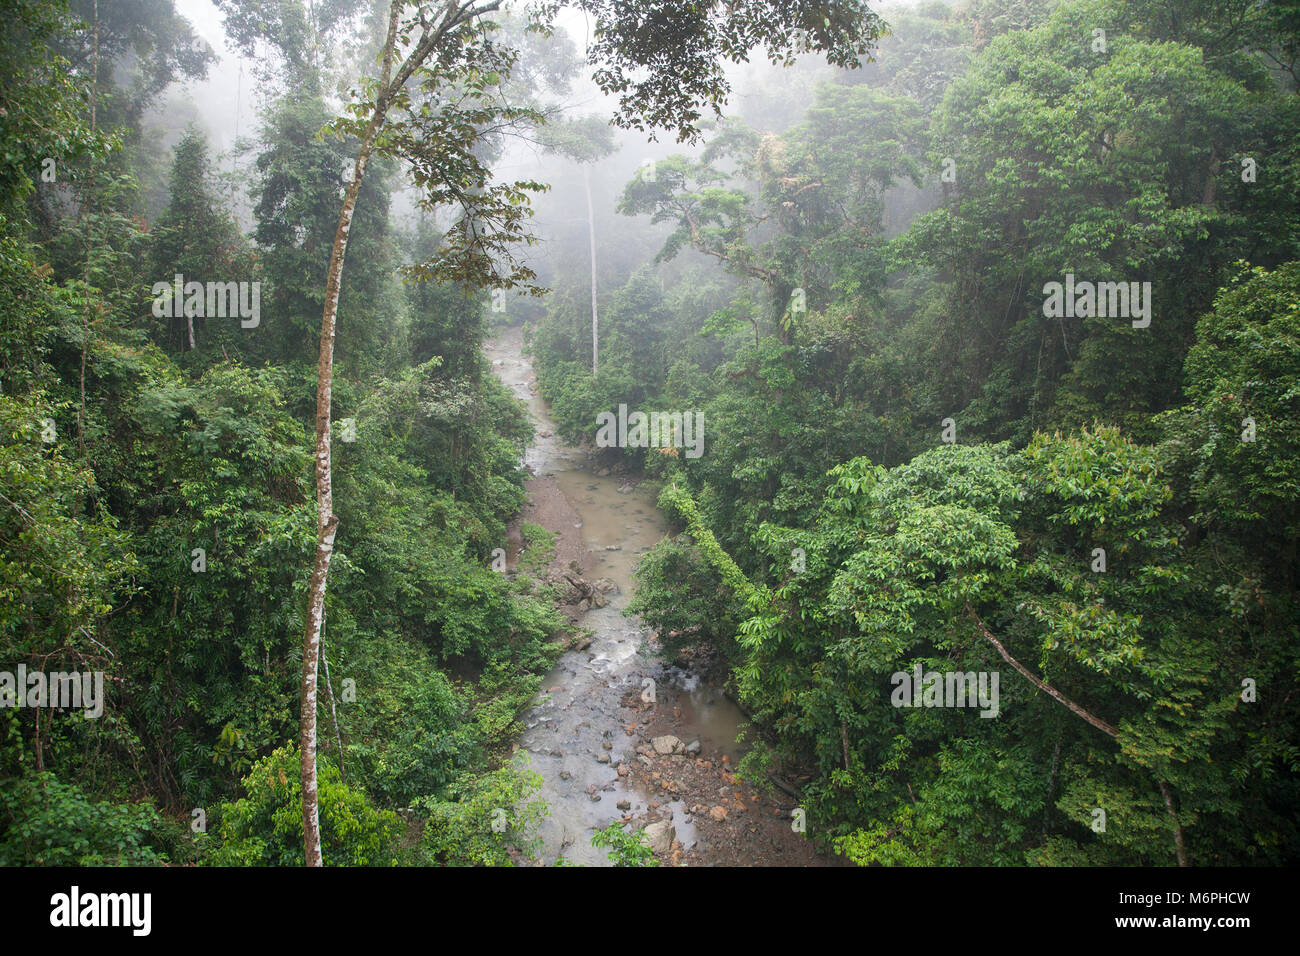 Tropical lowland dipterocarp rainforest in Danum Valley Conservation Area - Stock Image